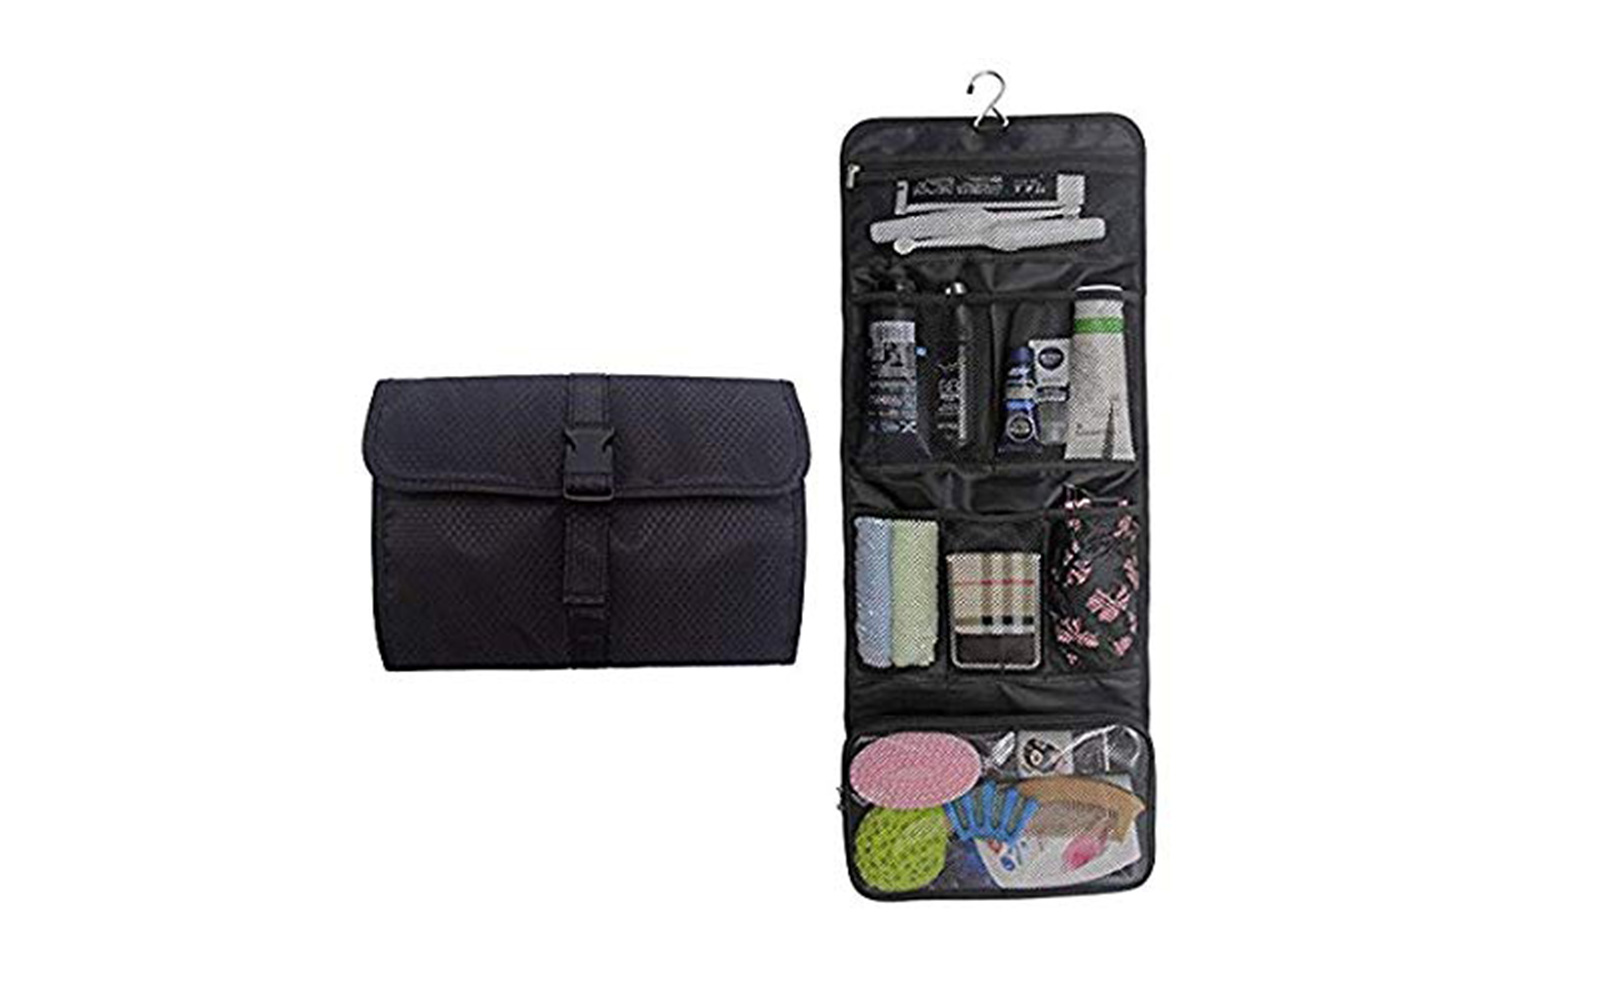 Best Roll-Up Toiletry Bag: Tanto Hanging Toiletry Bag